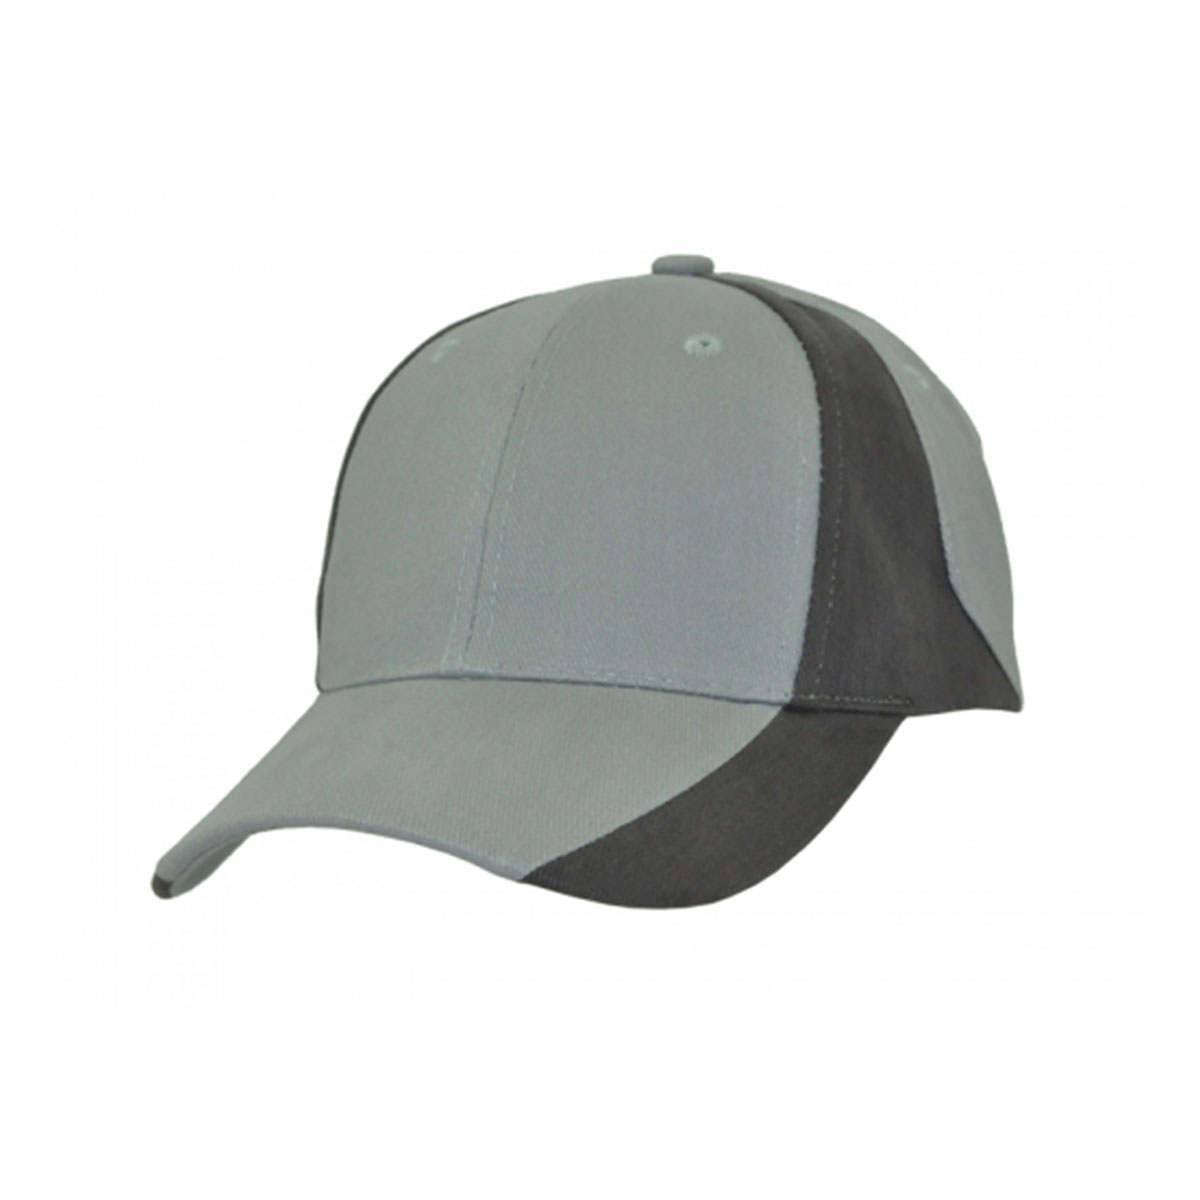 Vertek Cap-Dark Grey / Dark Charcoal